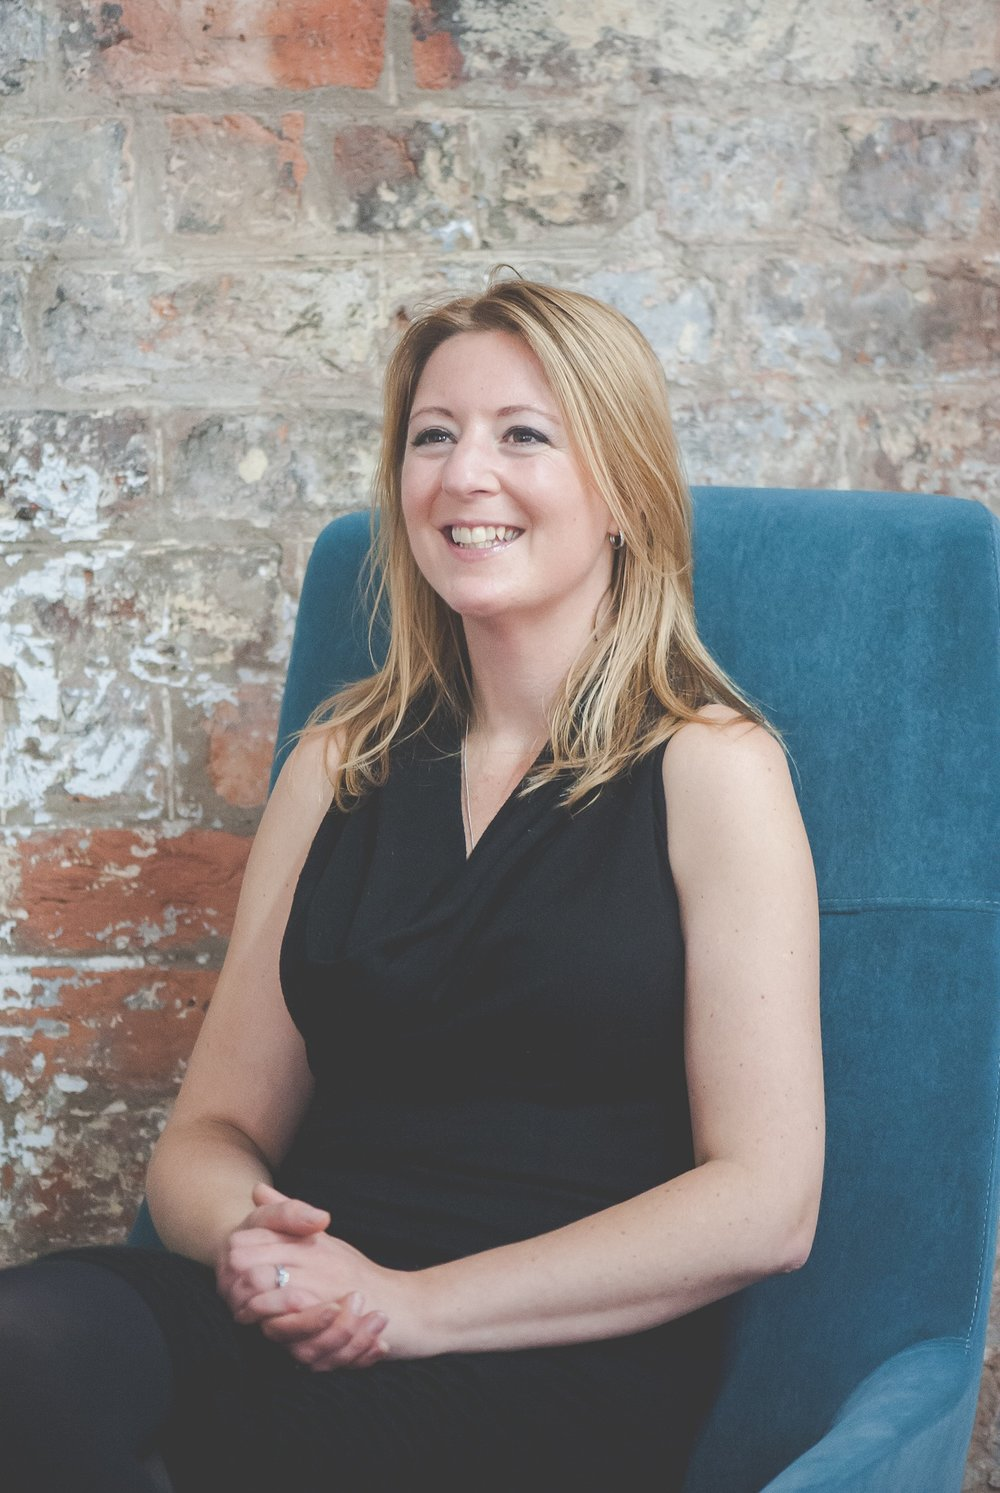 KIRSTIE DICKENS – OFFICE MANAGER   Kirstie has spent 20 years in hospitality management ranging from gastropubs to Michelins star restaurants, and now runs our office with the same care and professionalism. From HR and finance to project support, her organisational skills can't be beaten.